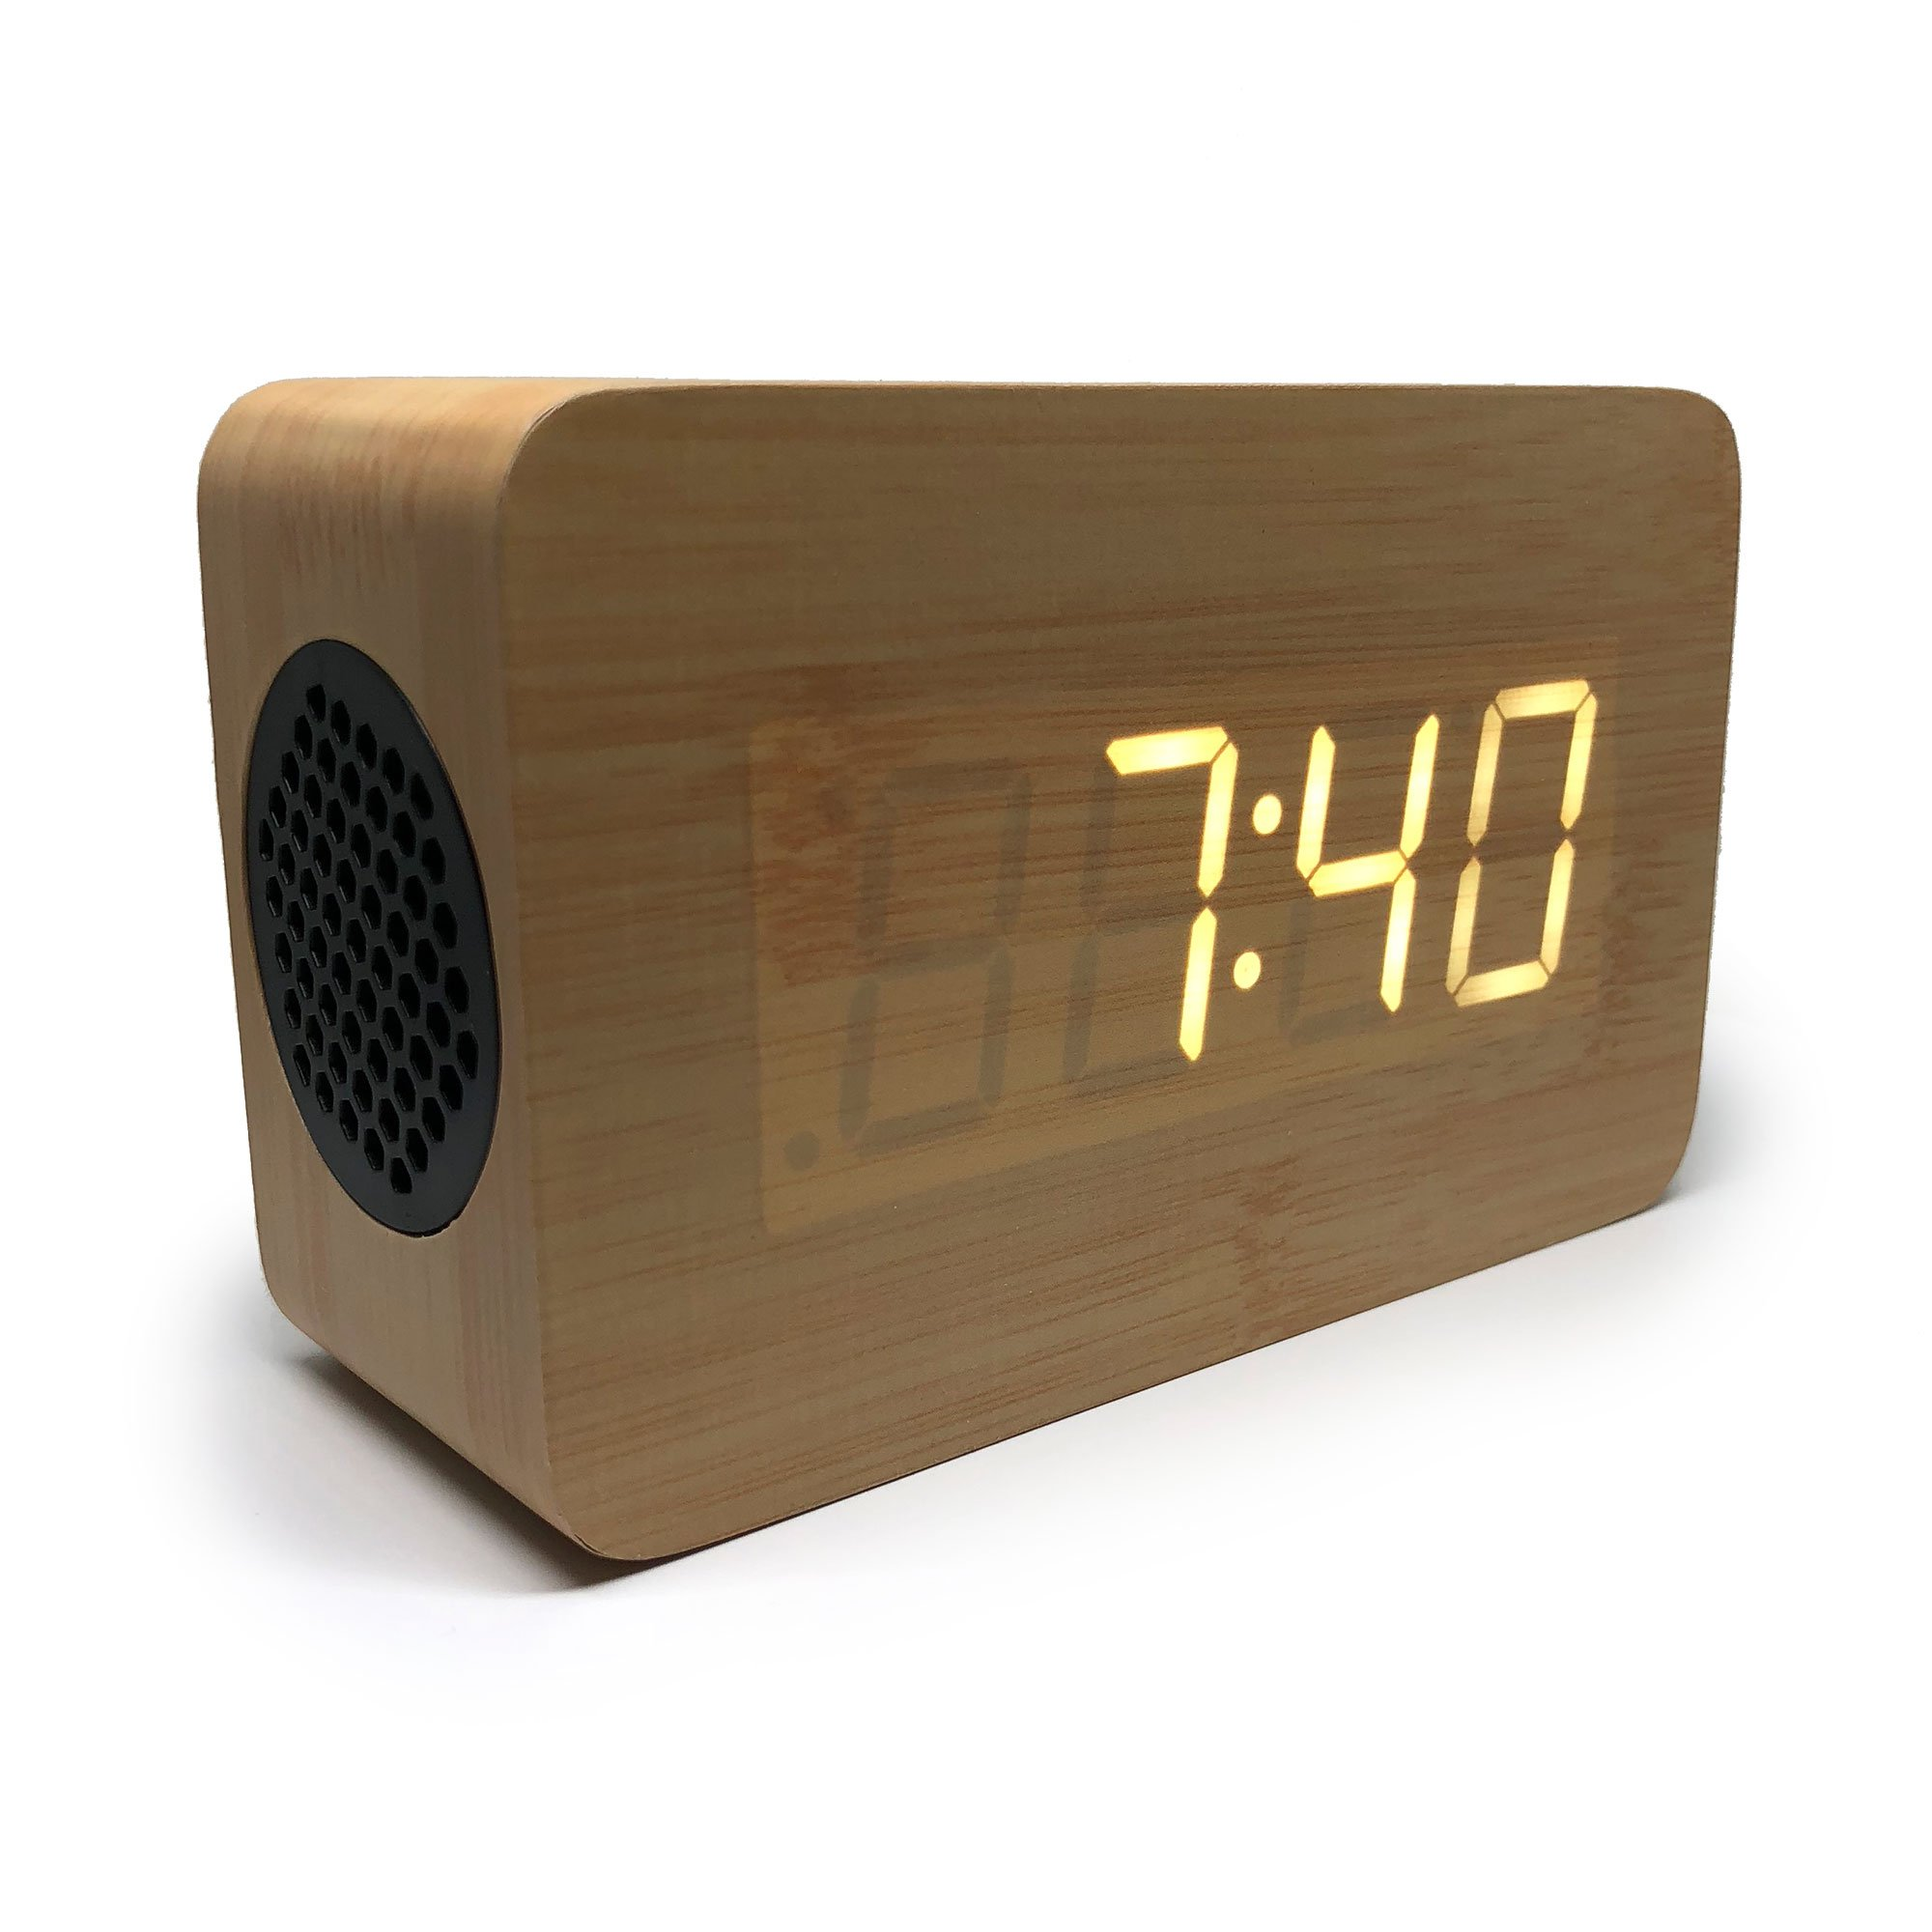 Bluetooth Alarm Clock: Portable Speaker Digital Stereo Wooden Home Office Bedroom Travel LED Display Rechargeable Removable Backup Battery Time Date Temperature 12 24 HR Audio System Best Gift Idea